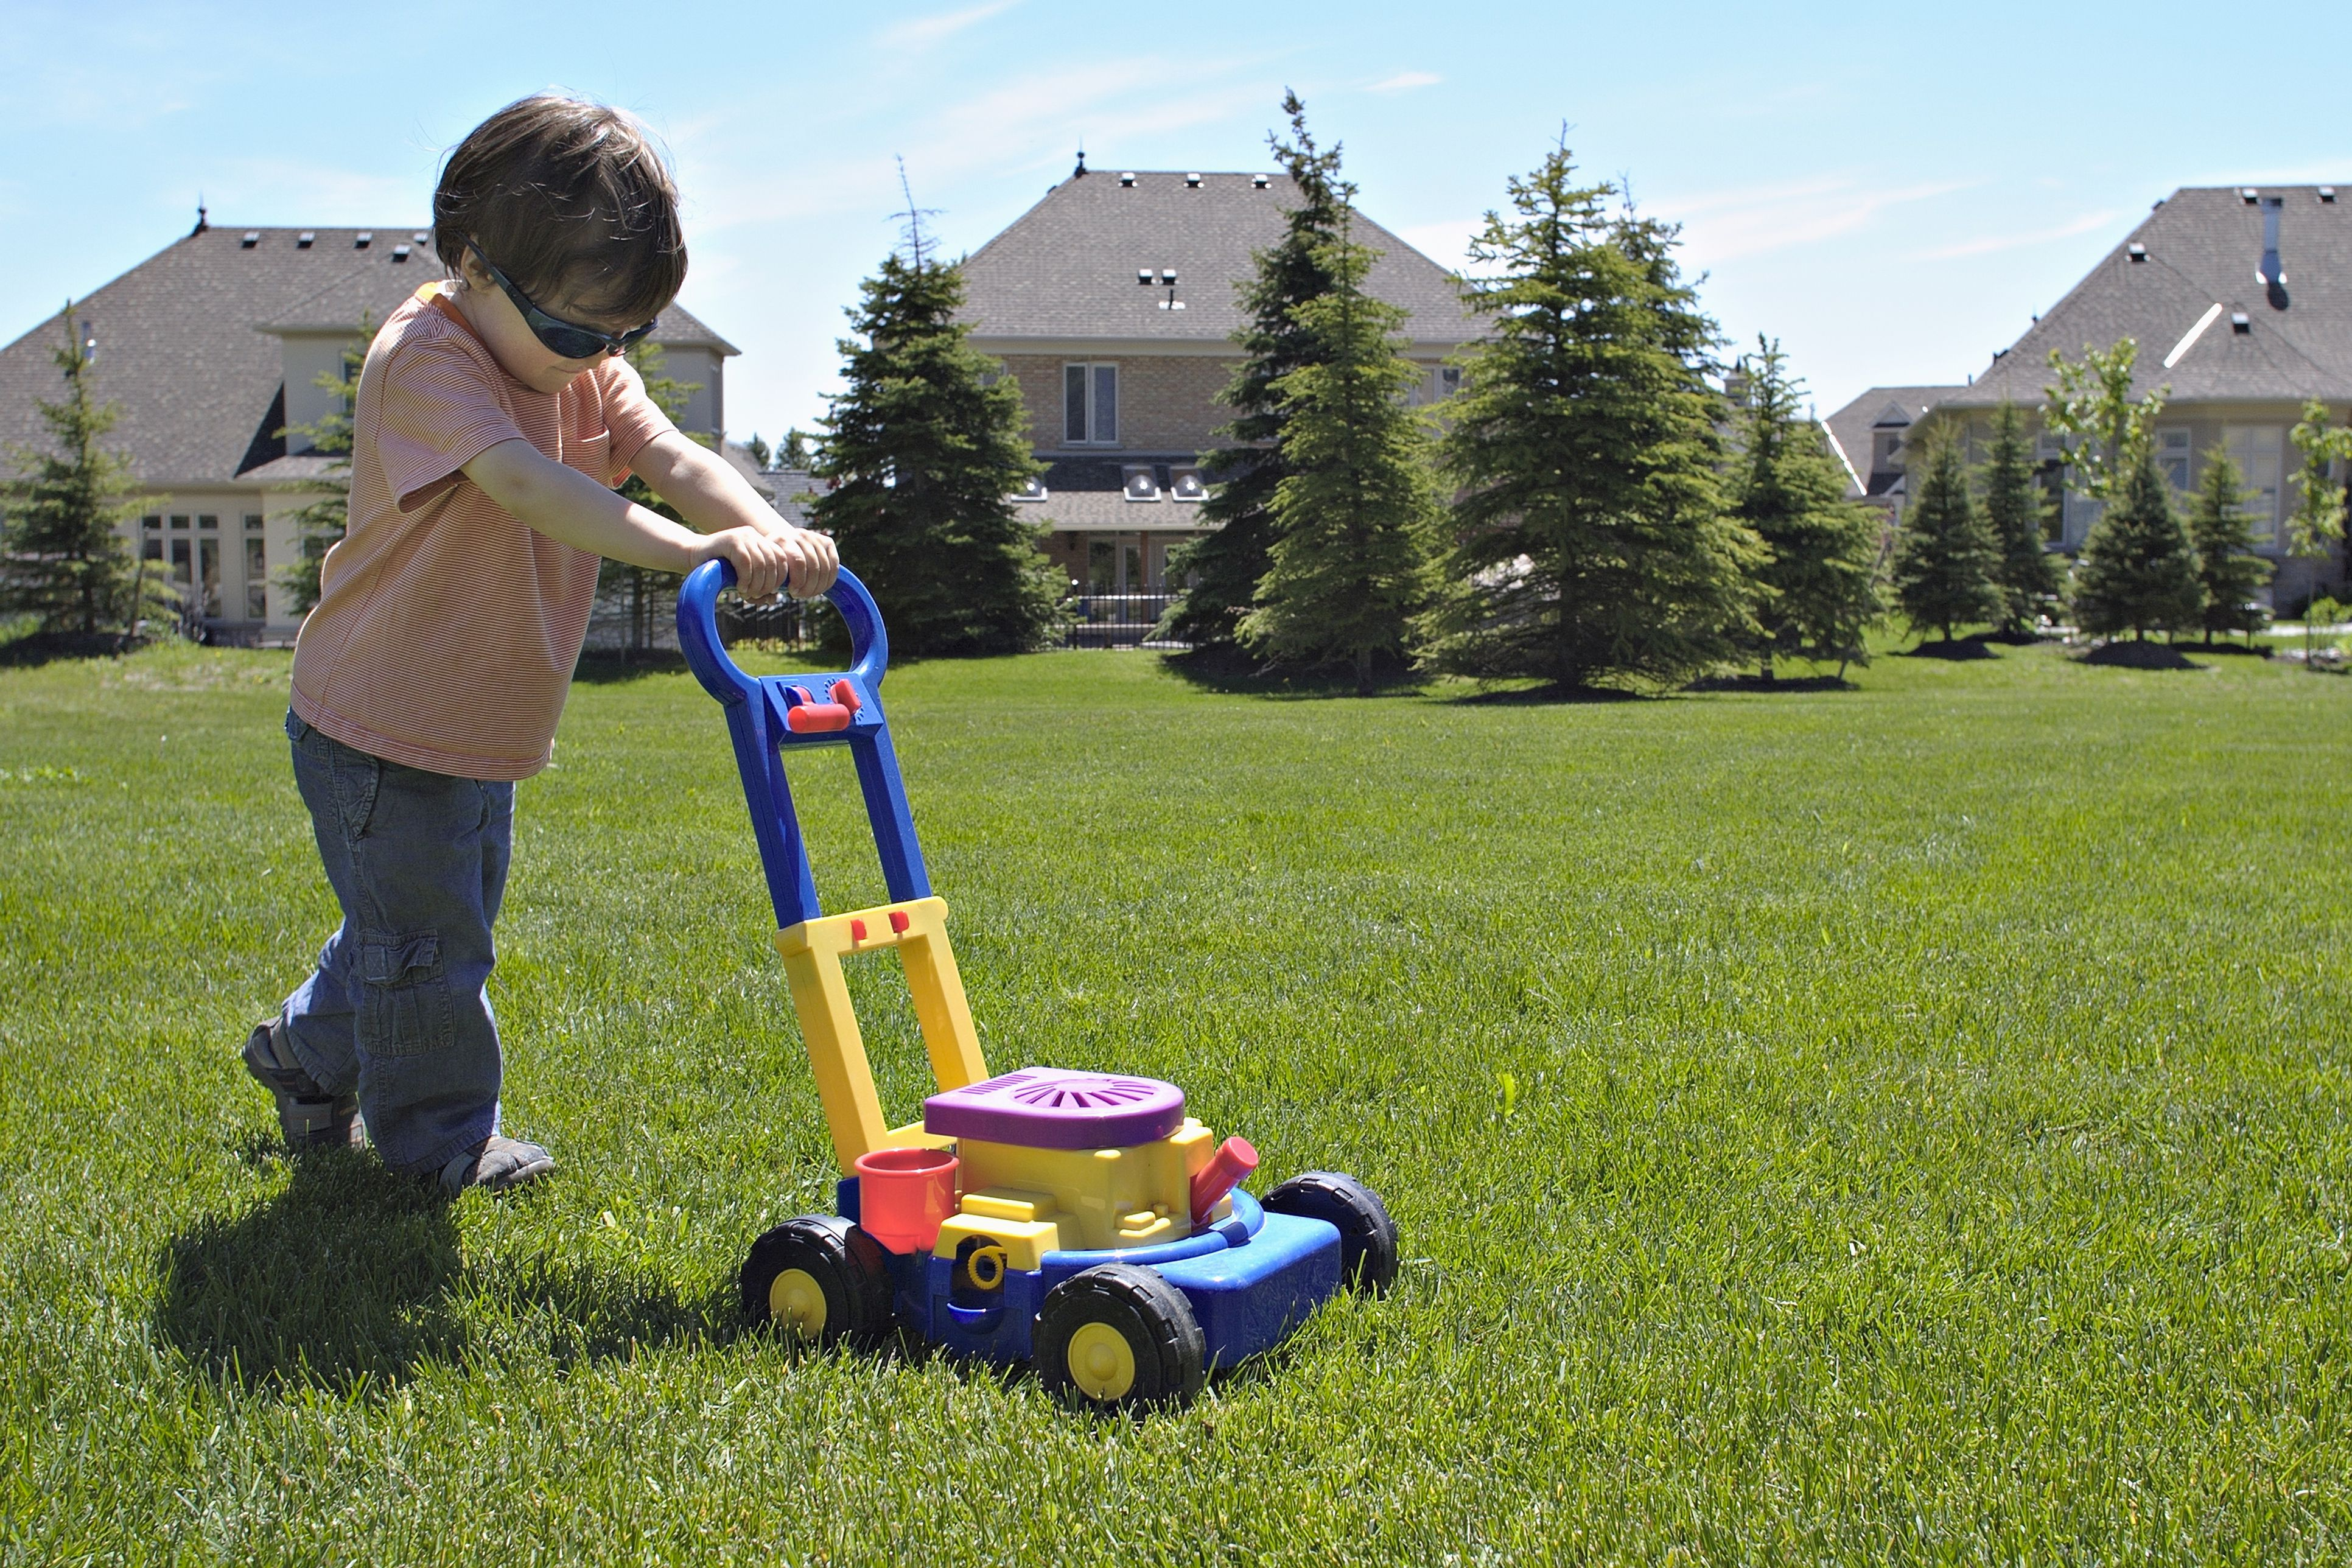 The Best Toys for 18-Month-Old Boys of 2019